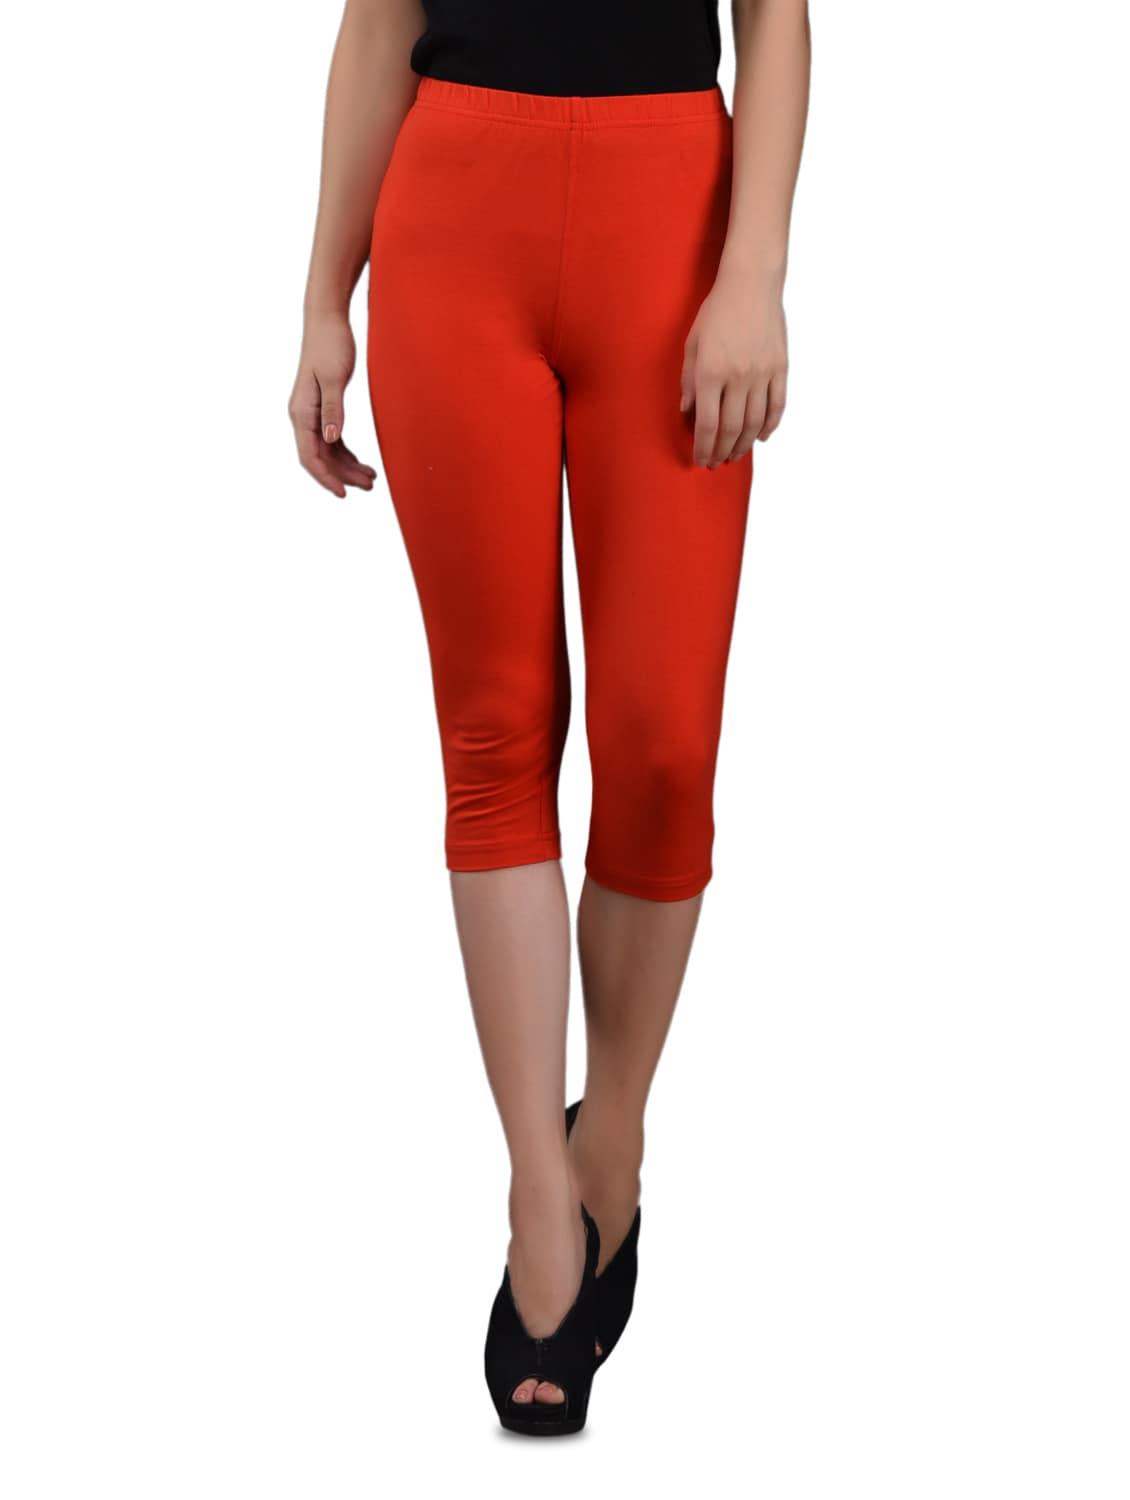 0a92b102a28 Buy Red Cotton Knit Lycra Knee-length Leggings for Women from Finesse for  ₹599 at 0% off